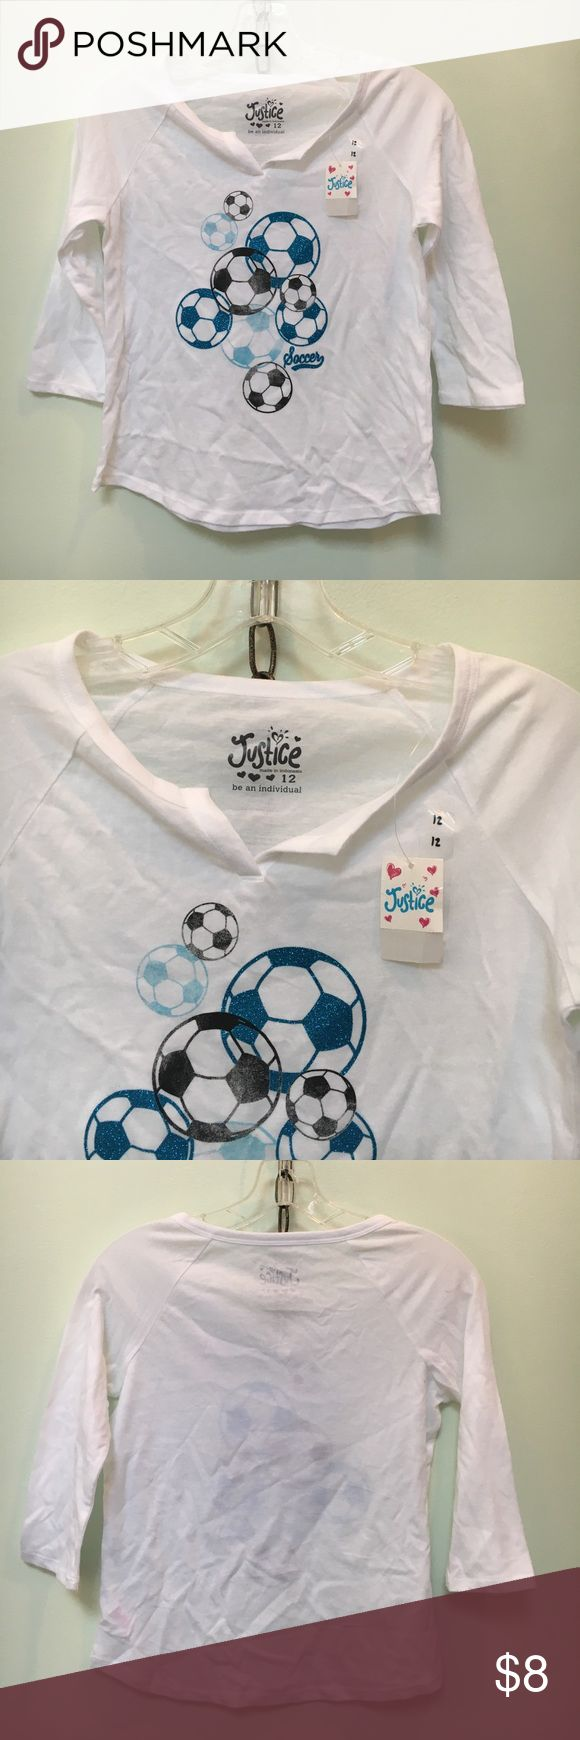 NWT Justice Shirt NEW Justice white 3/4 sleeve with glitter soccer balls. Justice Shirts & Tops